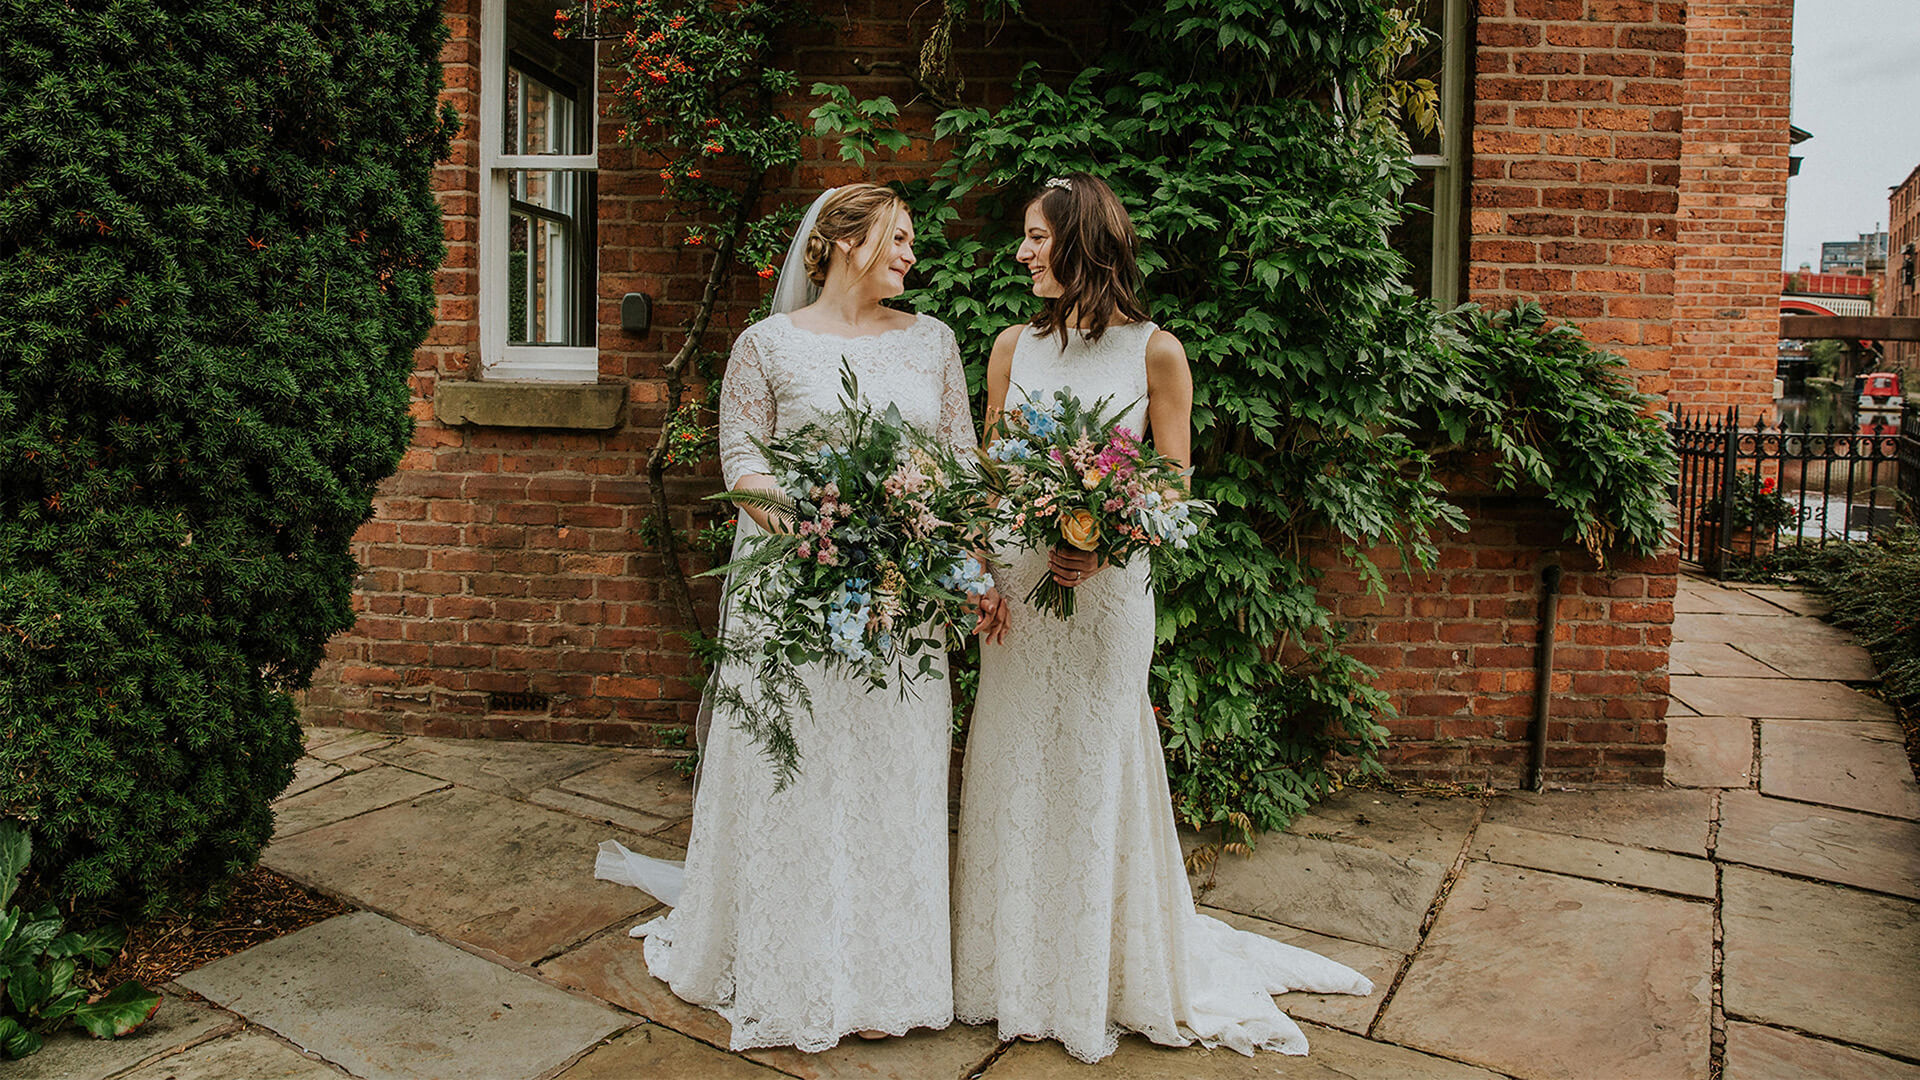 Manchester weddings The Castlefield Rooms